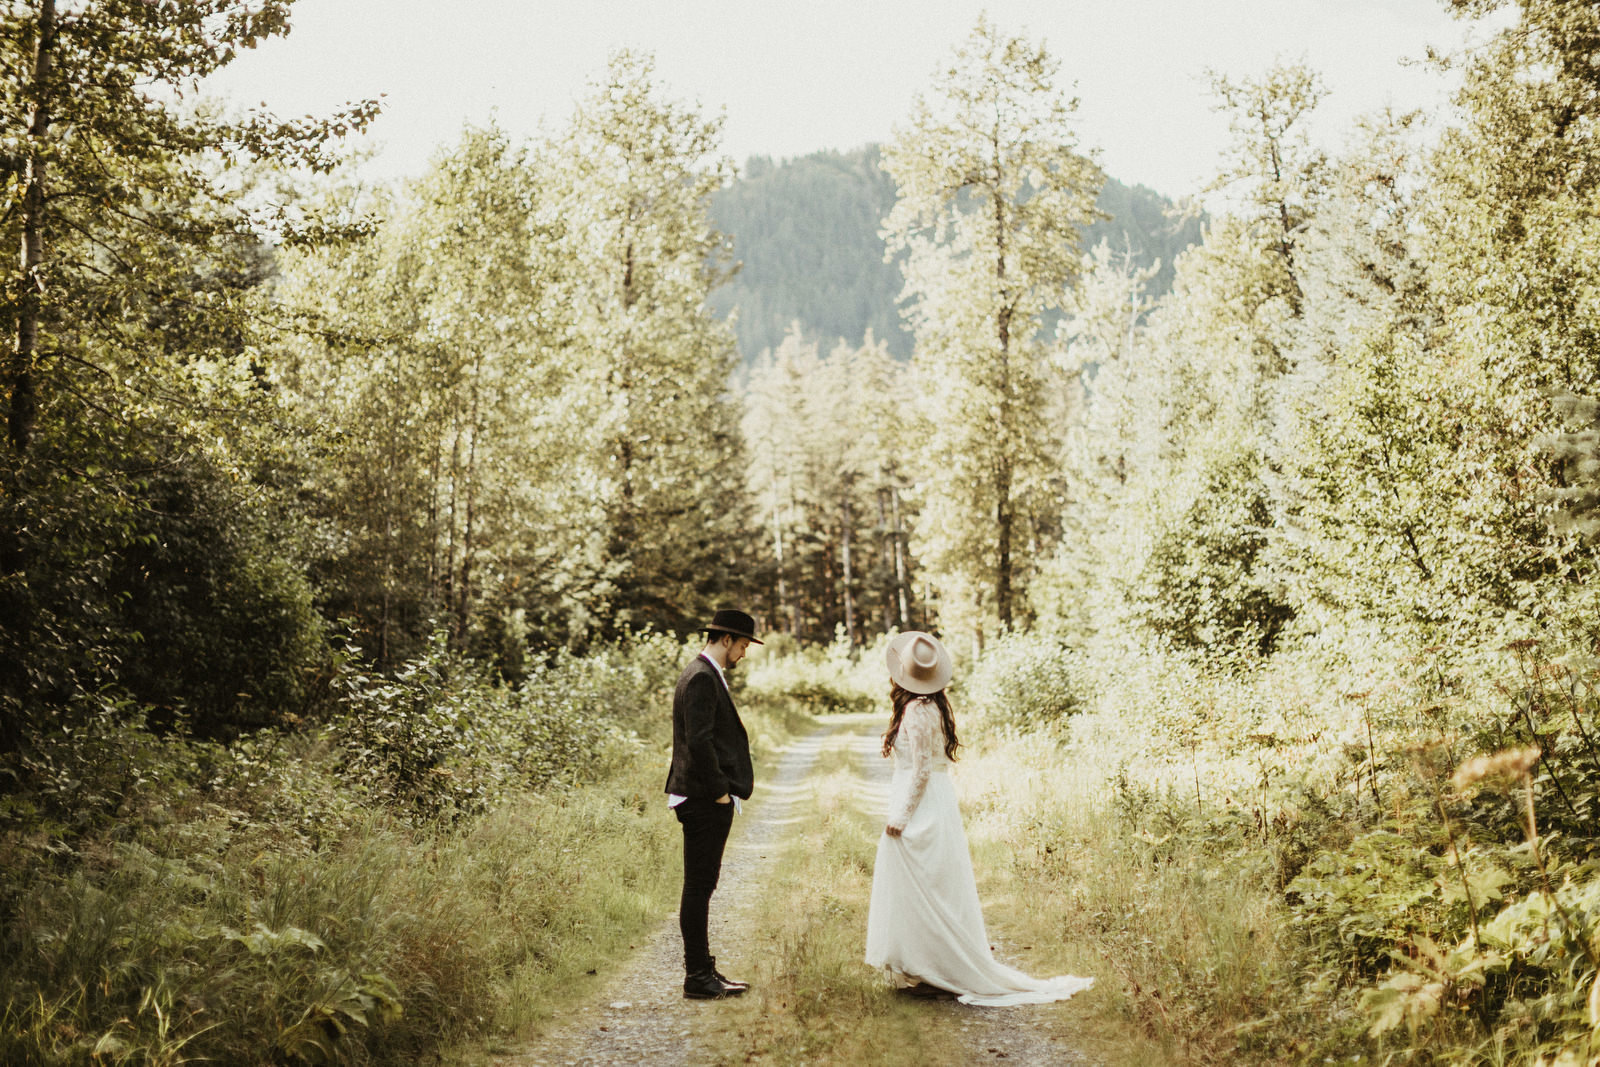 athena-and-camron-alaska-elopement-wedding-inspiration-india-earl-athena-grace-glacier-lagoon-wedding36